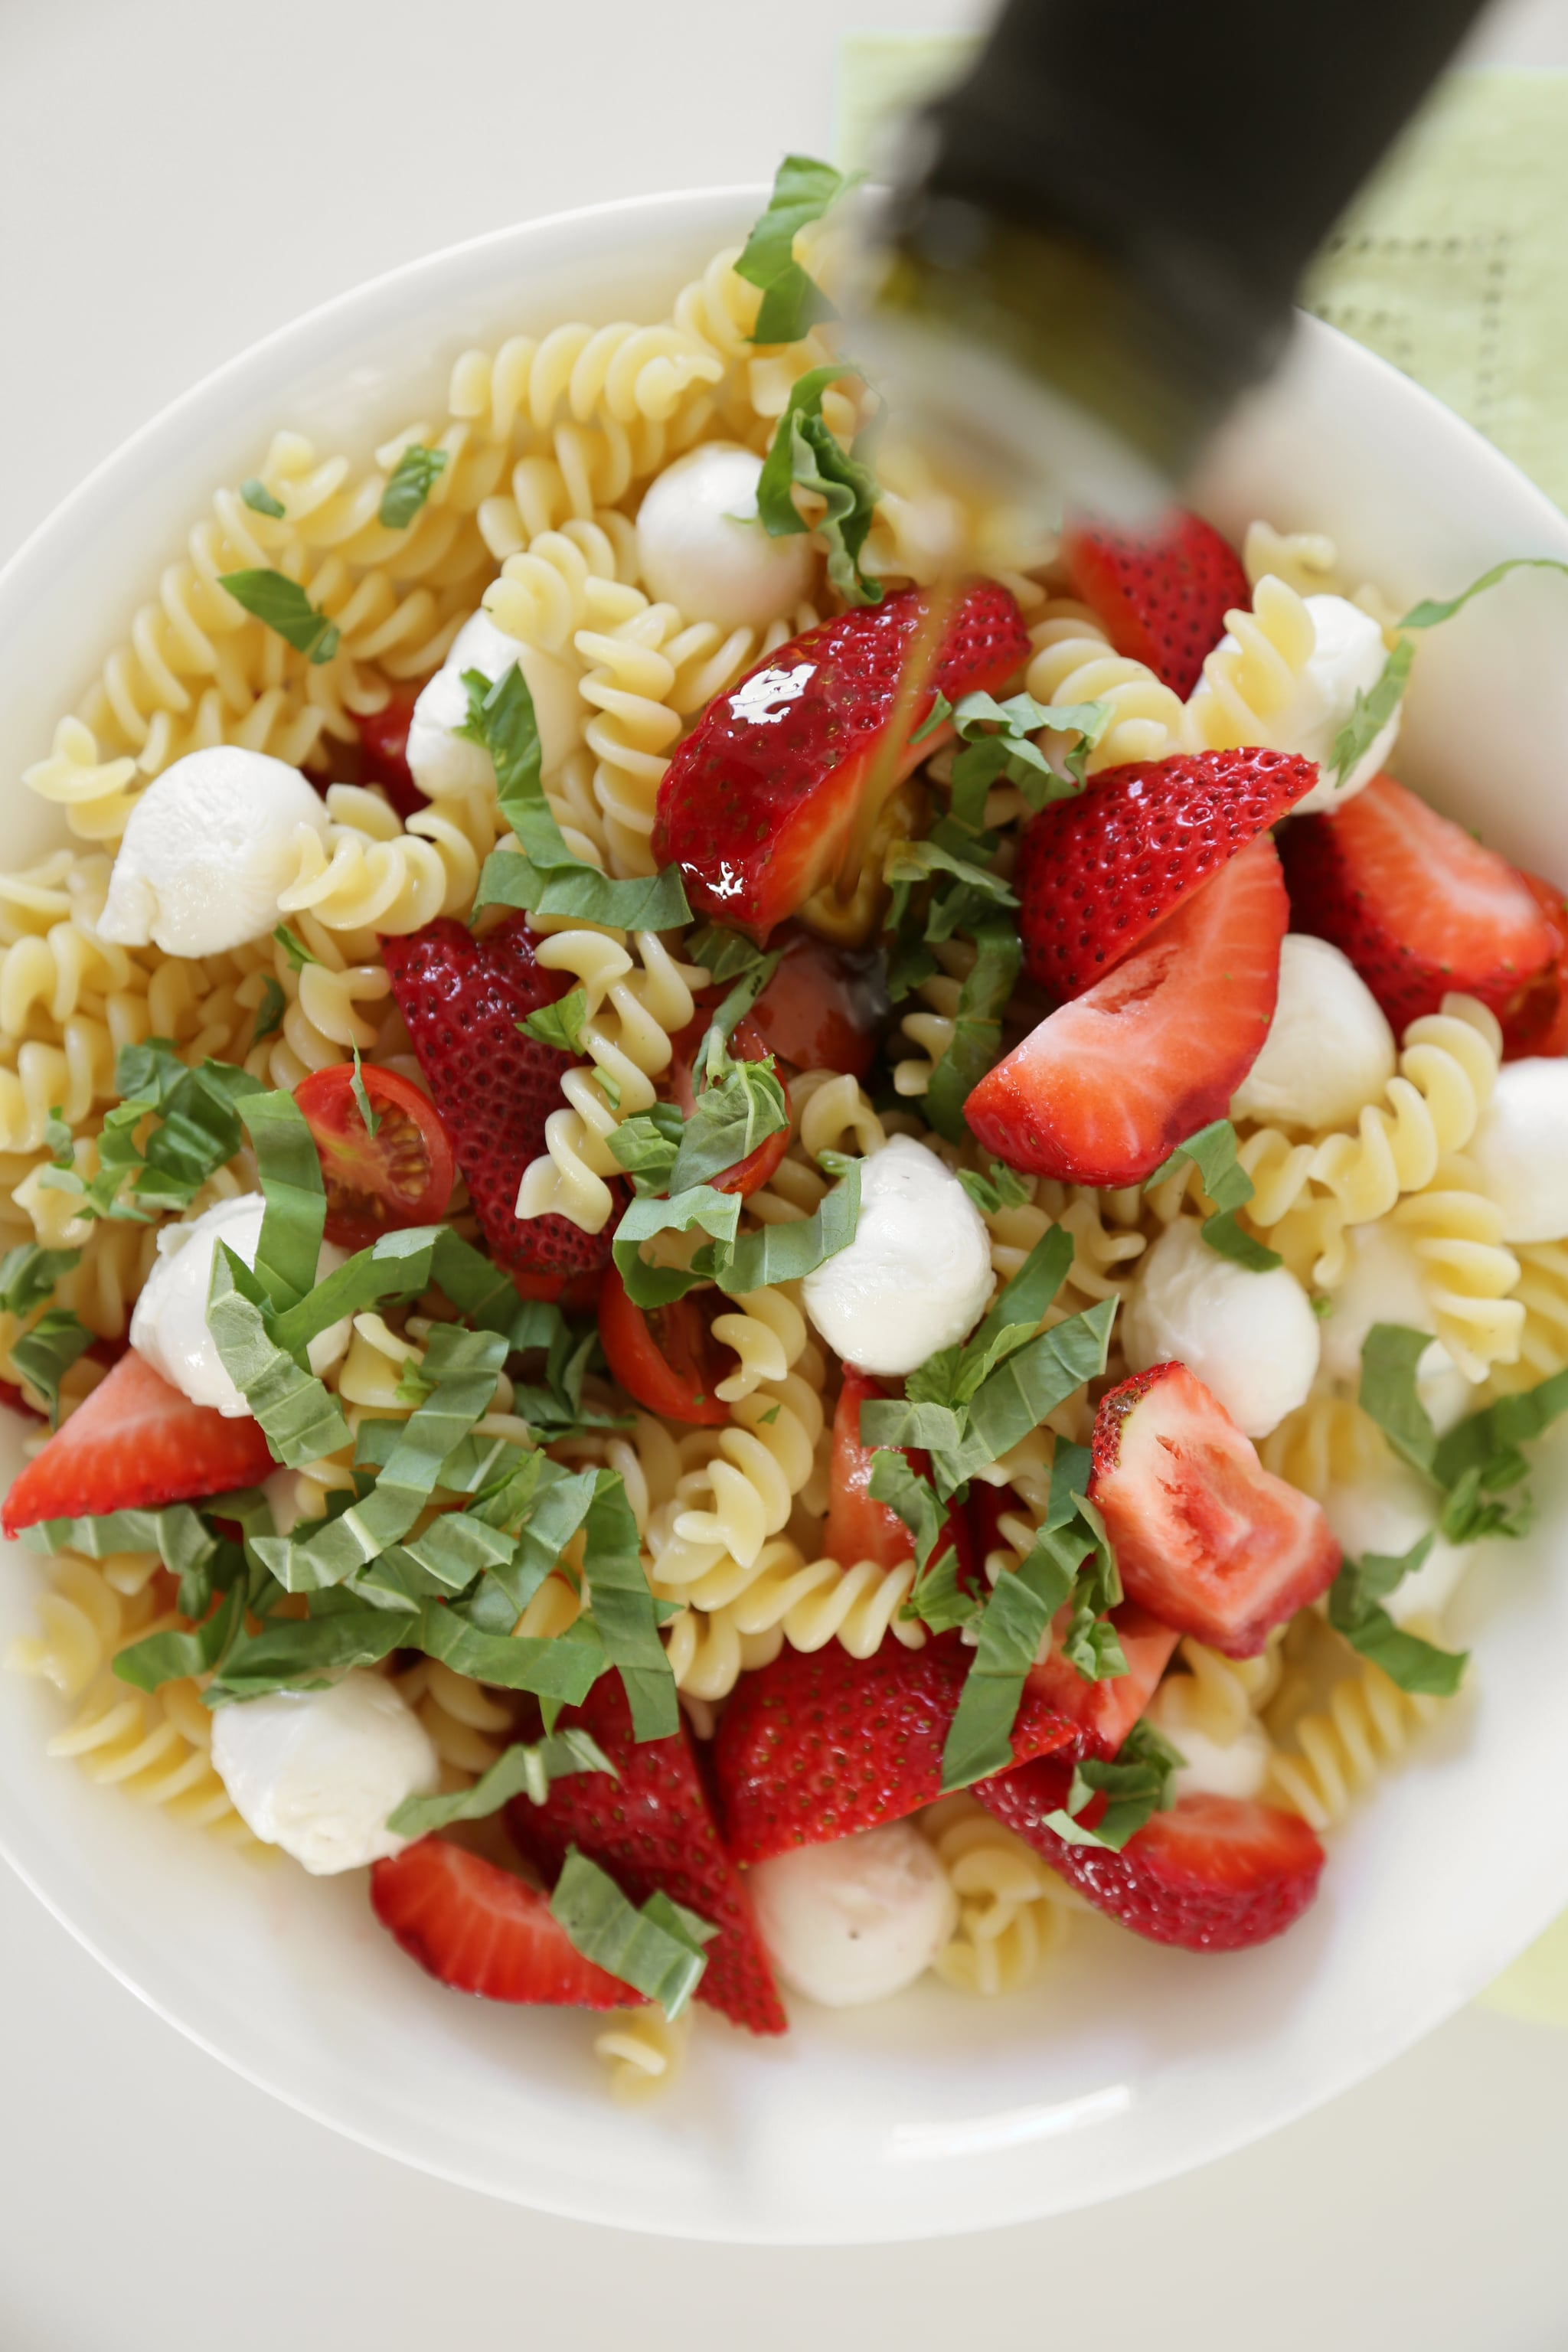 Feed a Crowd With Strawberry Caprese Pasta Salad